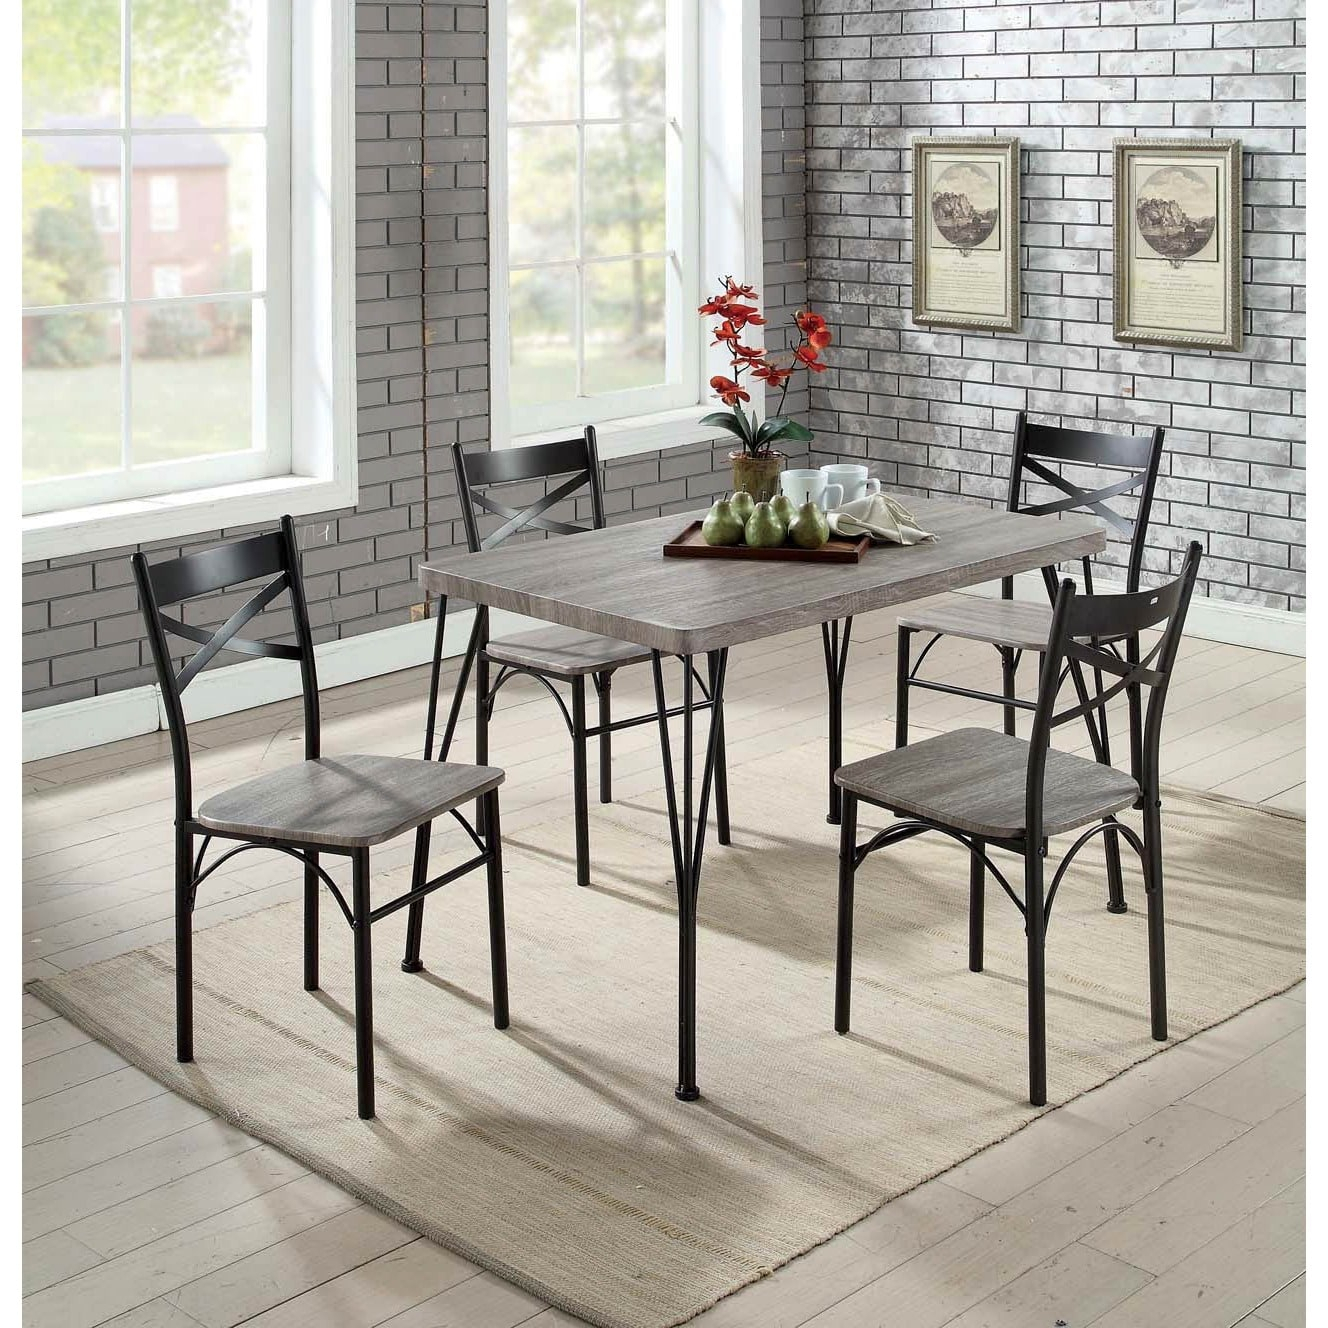 Furniture Of America Hathway Industrial 5 Piece Dark Bronze Small Pertaining To Latest Bearden 3 Piece Dining Sets (Photo 20 of 20)